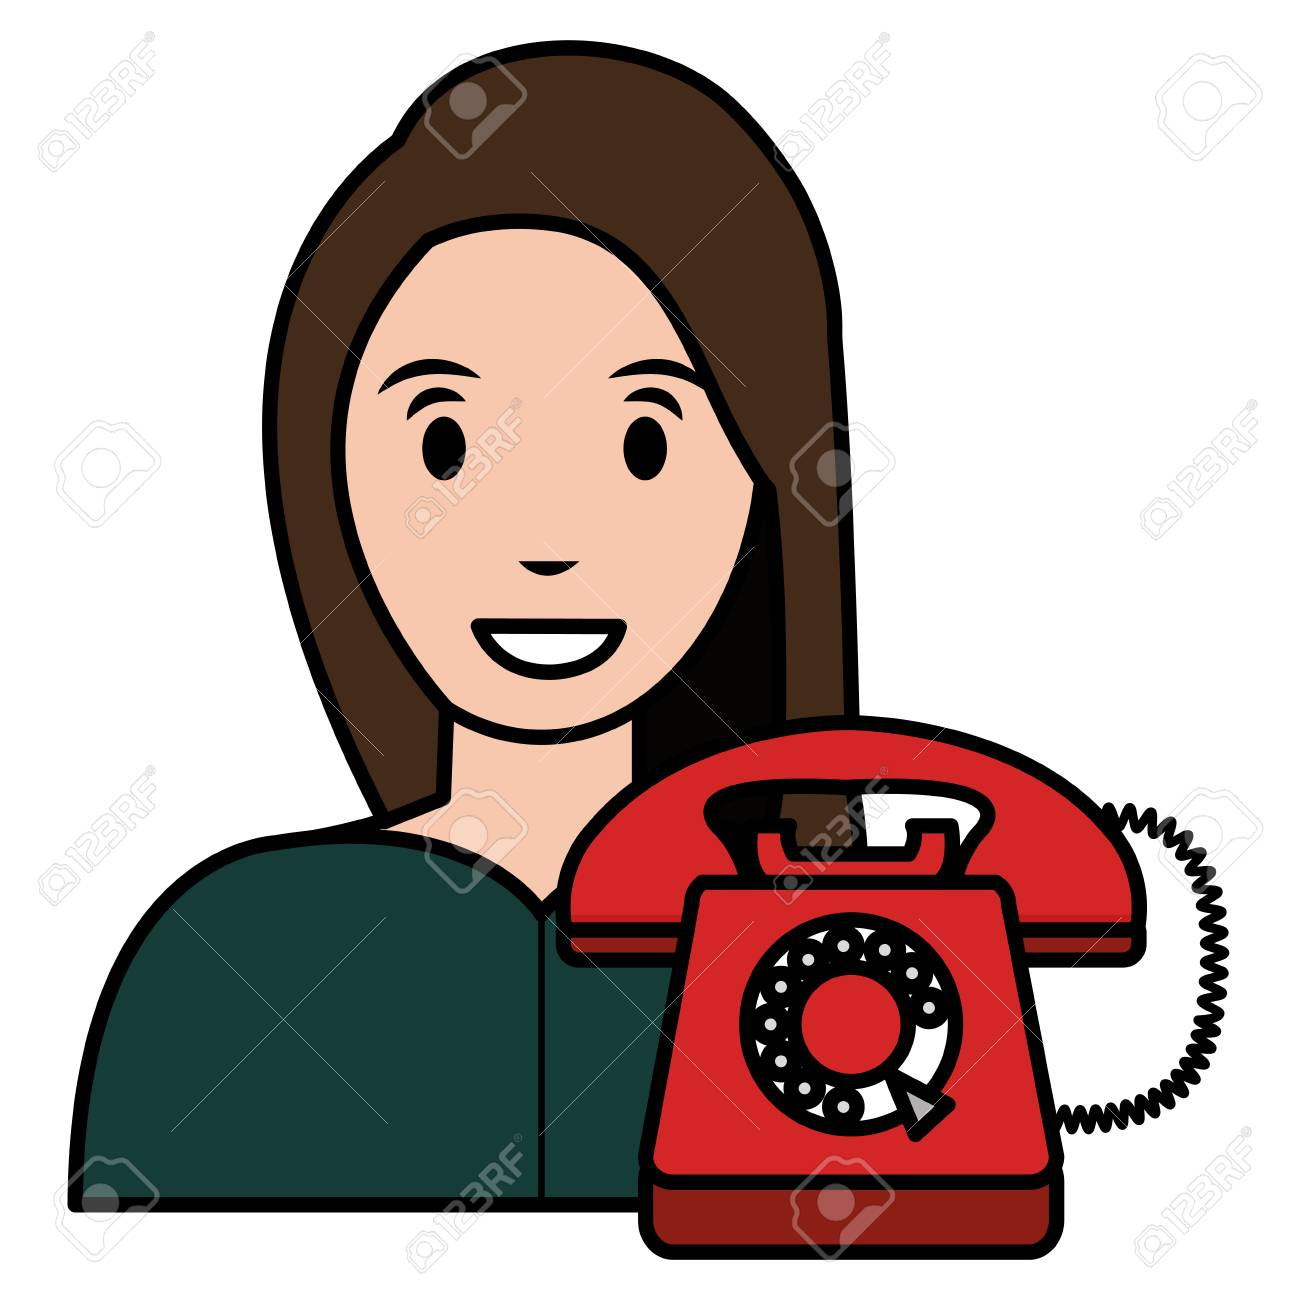 Red Phone Icon Png - Call Red Icon Png - Free Transparent PNG Download -  PNGkey